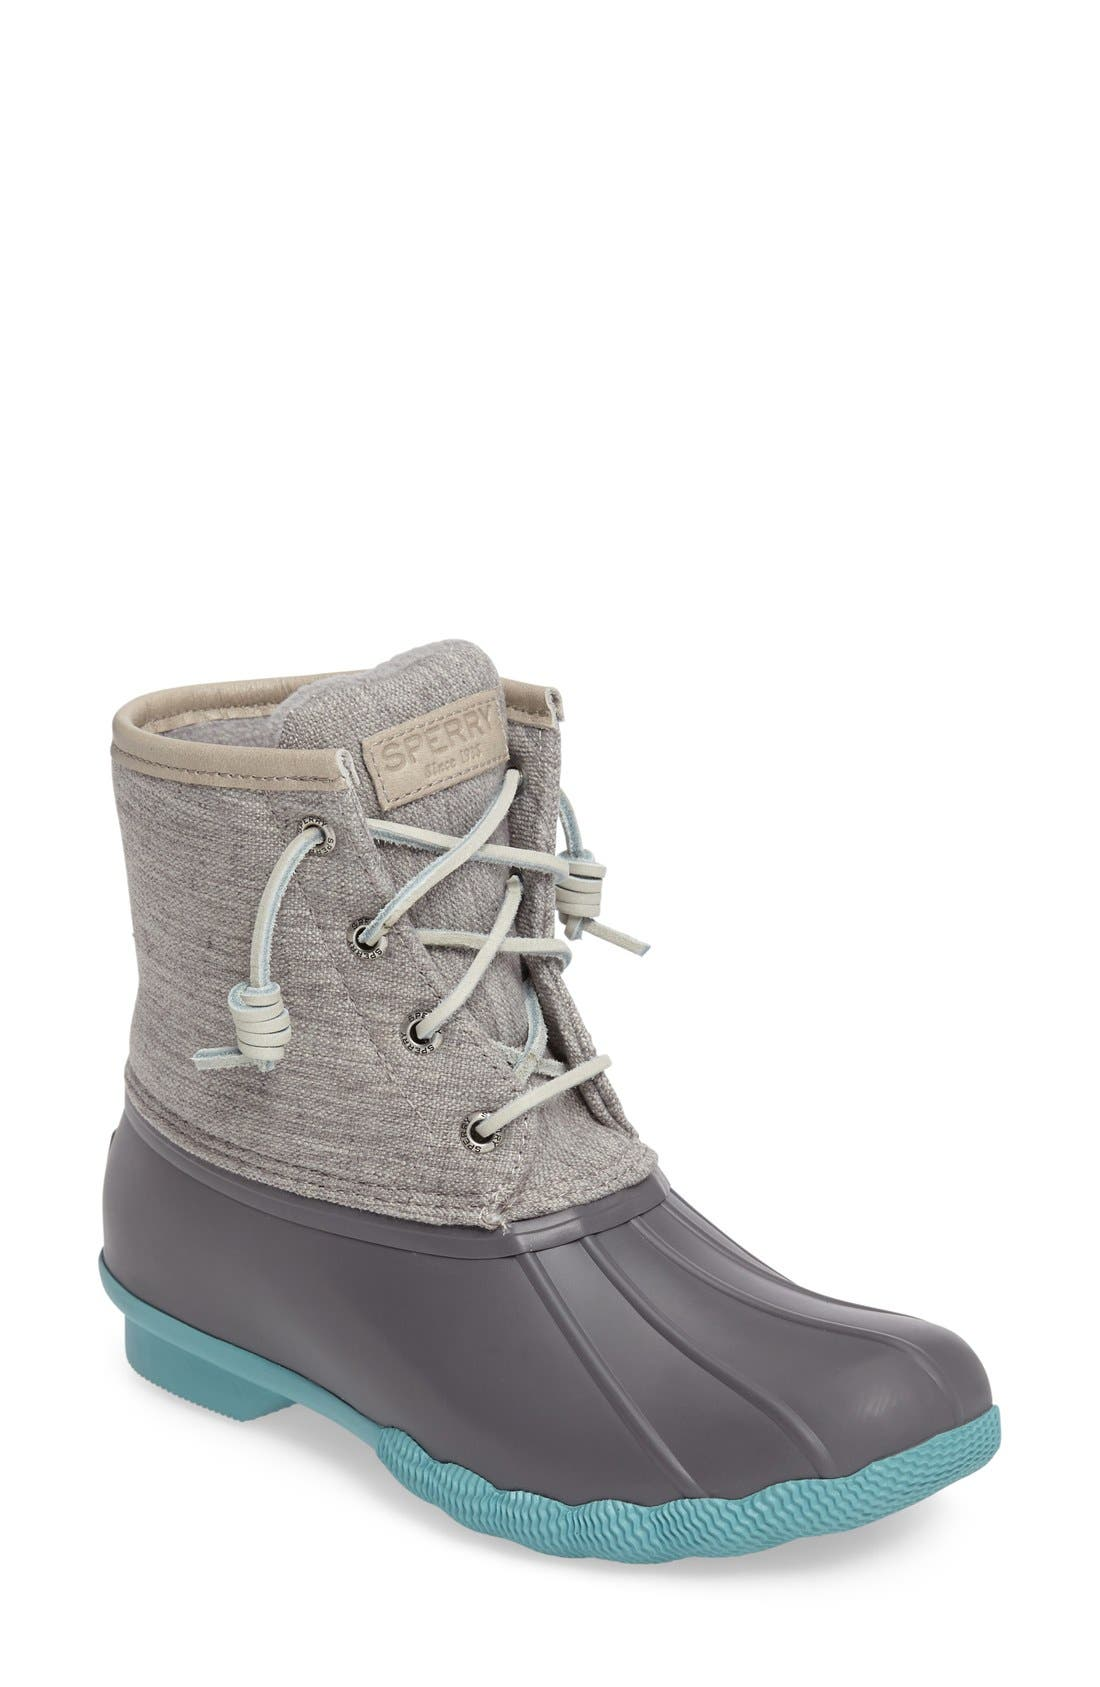 Main Image - Sperry 'Saltwater' Duck Boot (Women)